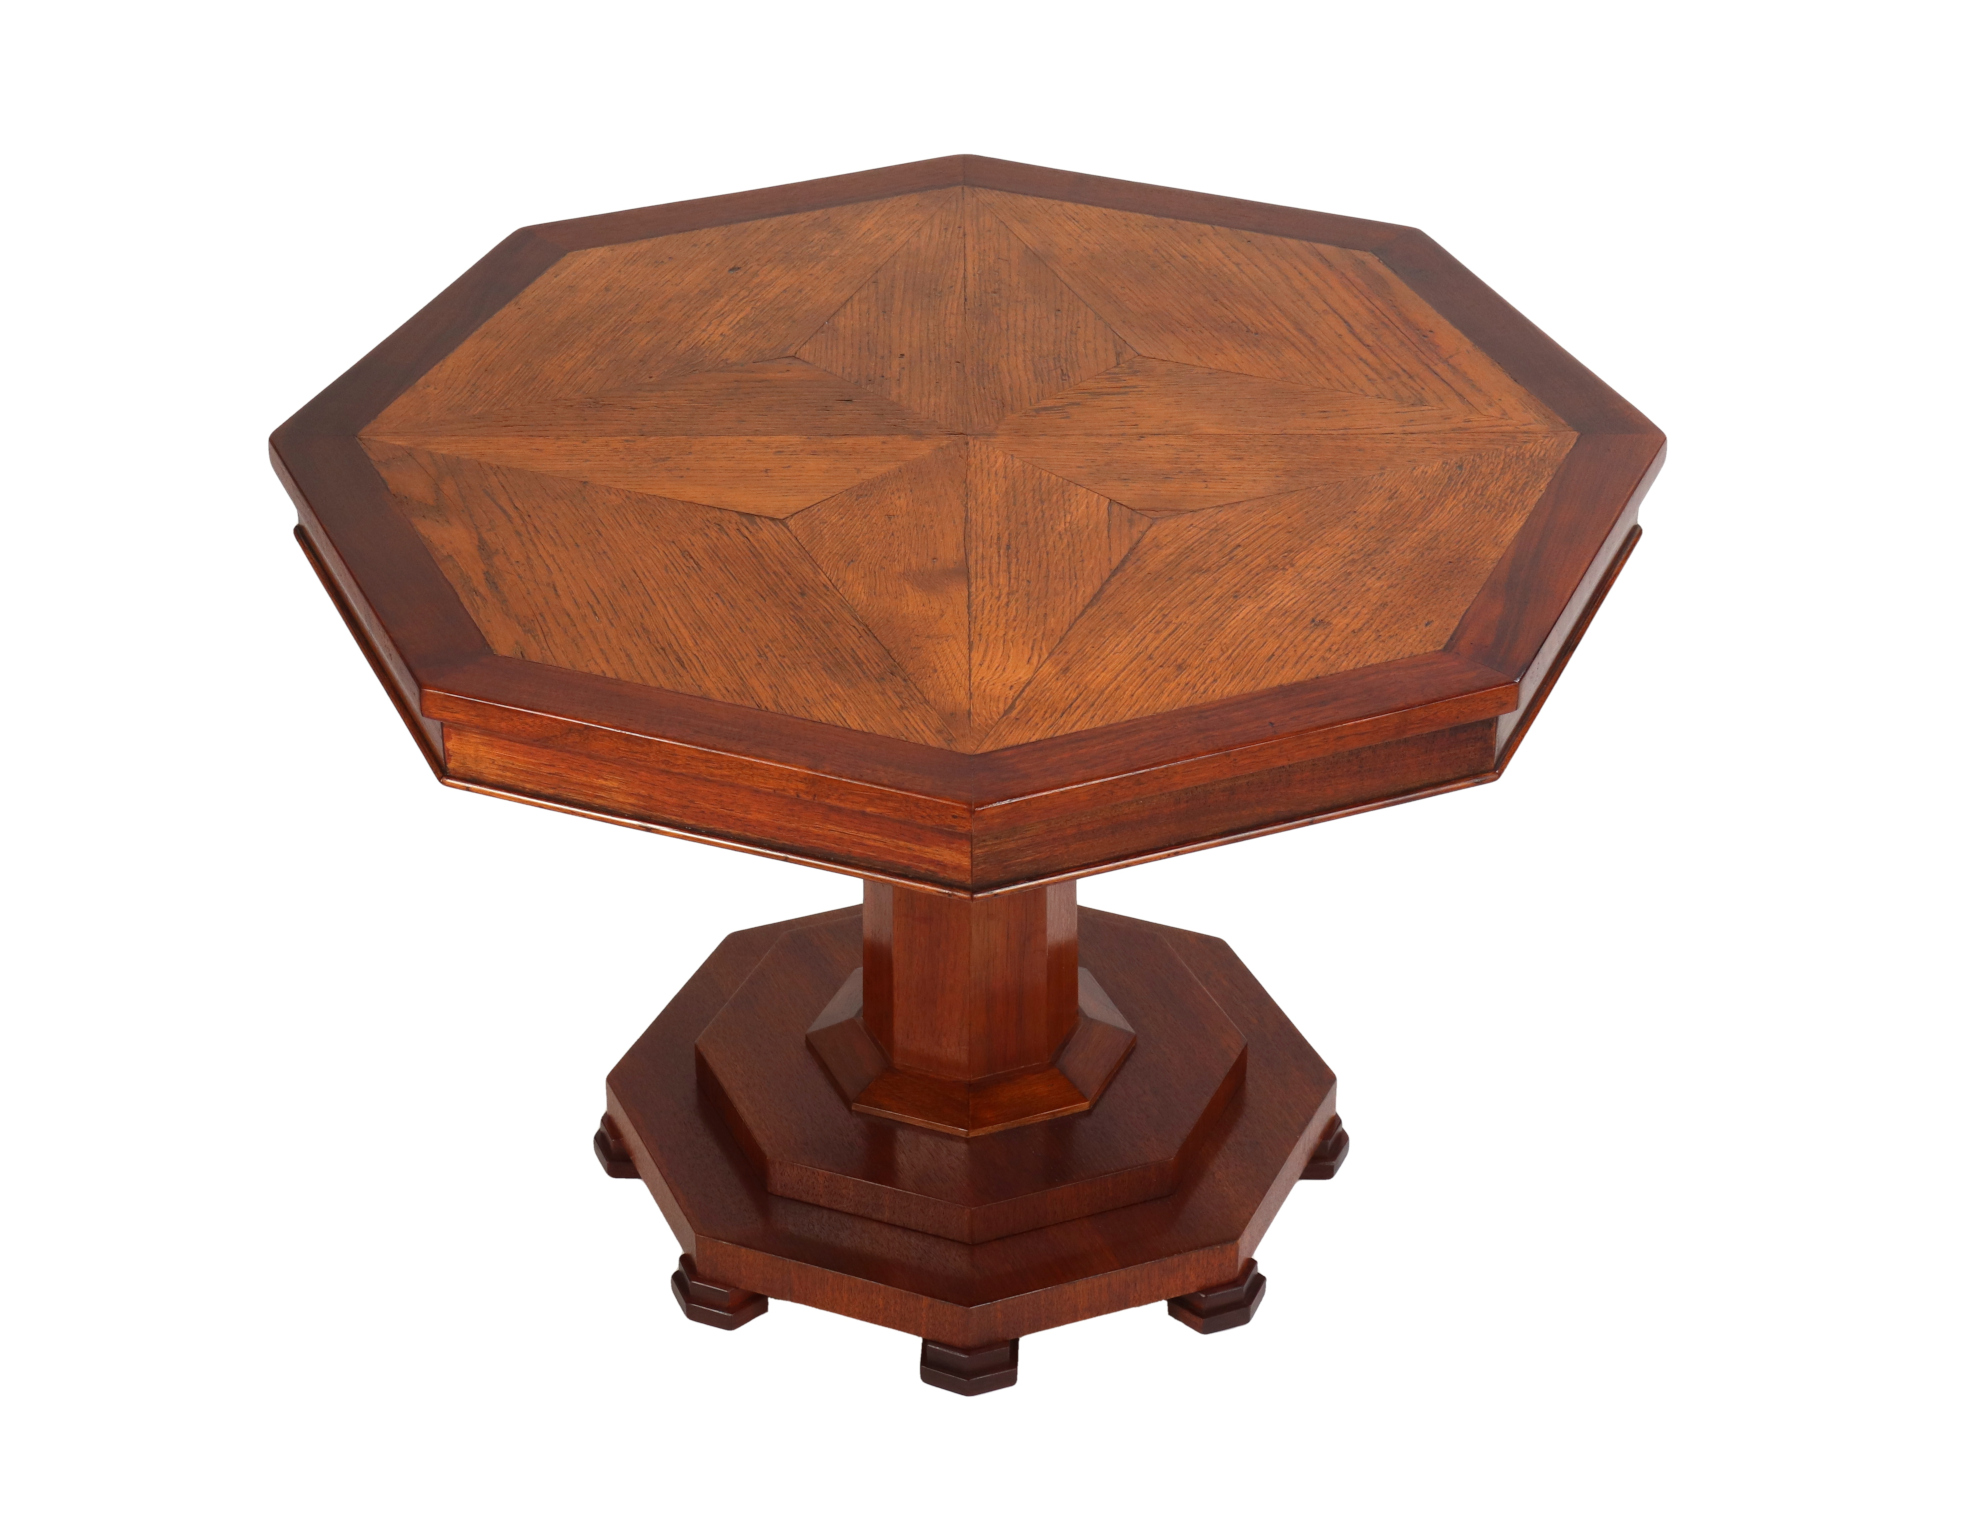 Oak Floor Panel Mounted as a Coffee Table, 19th c.